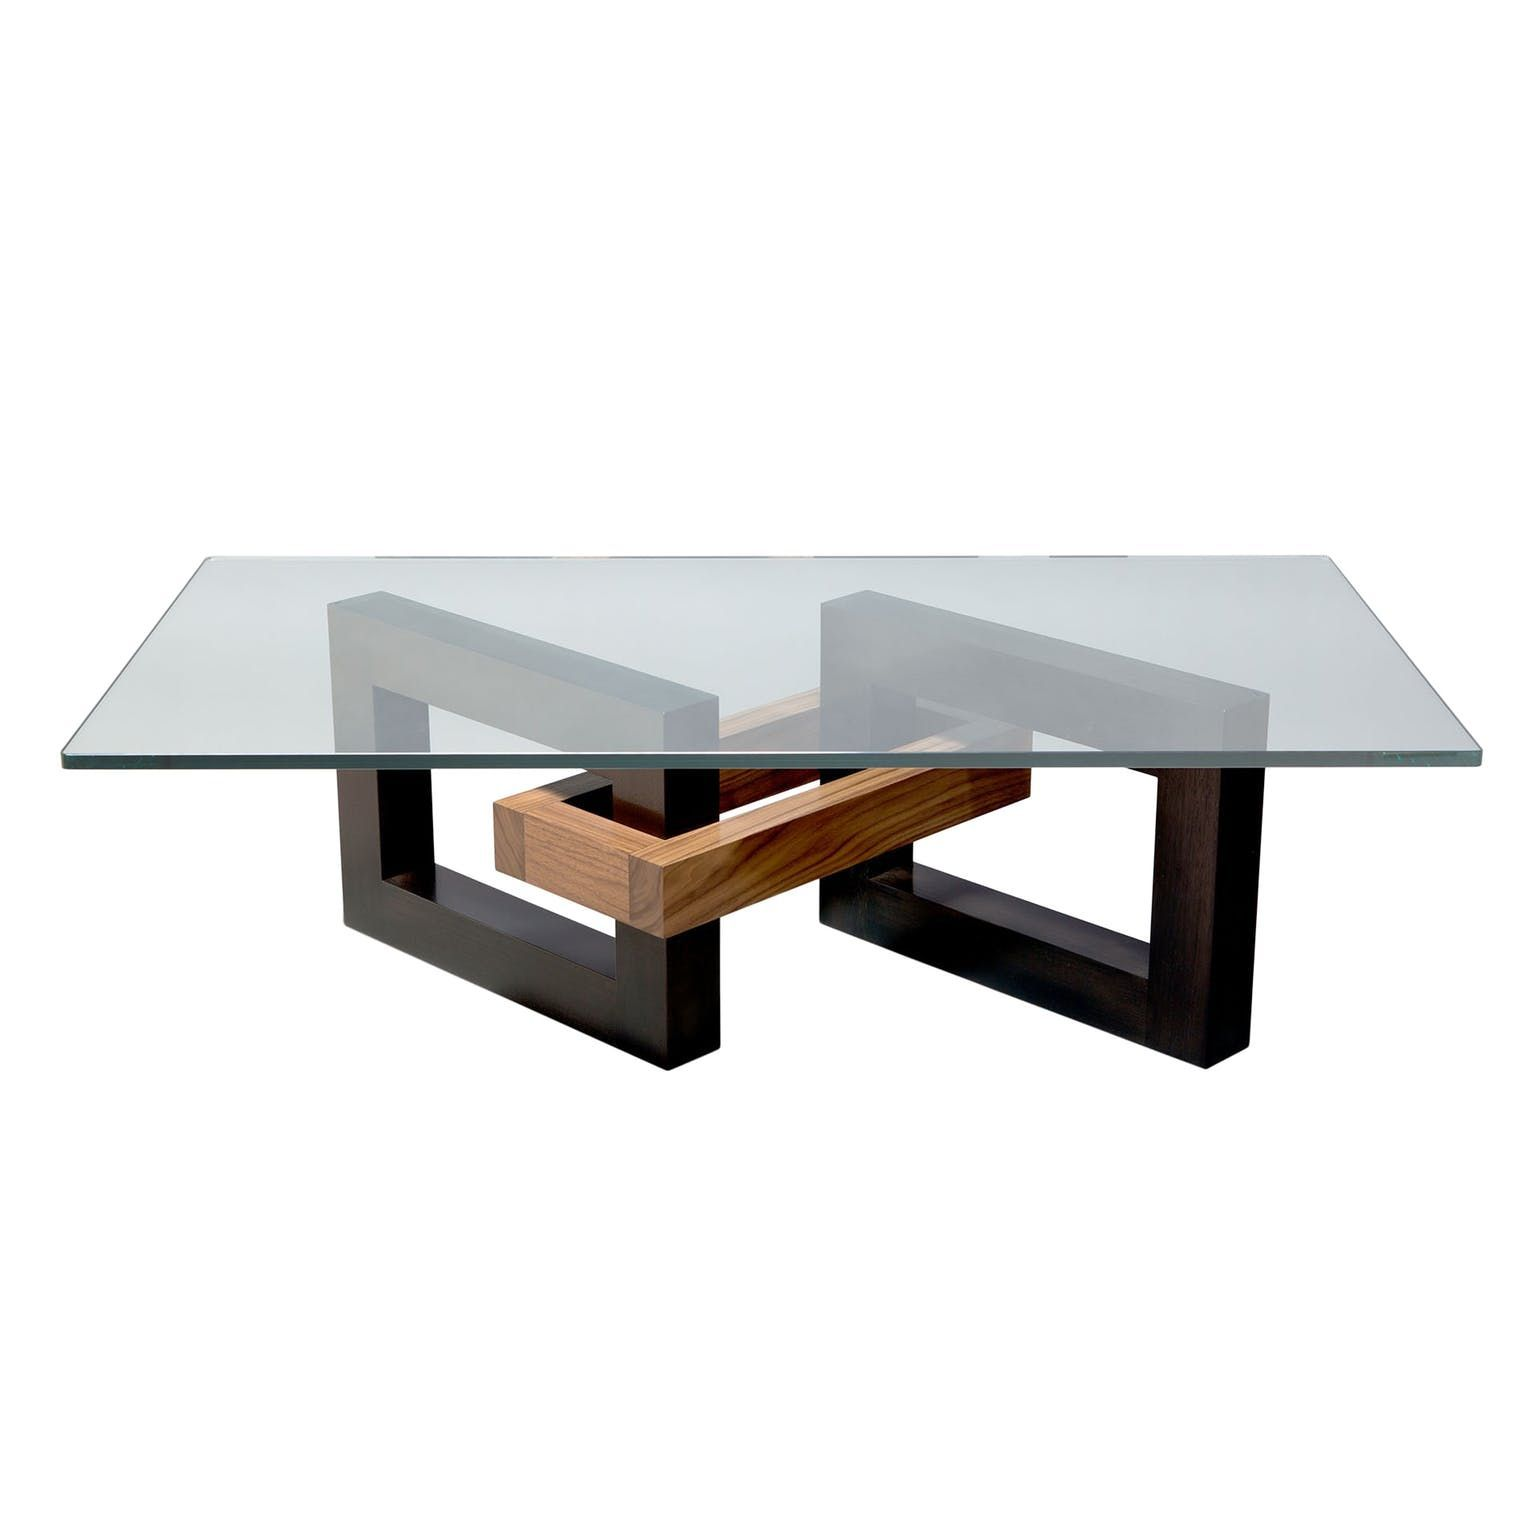 22 modern coffee tables designs interesting best unique and rh pinterest com